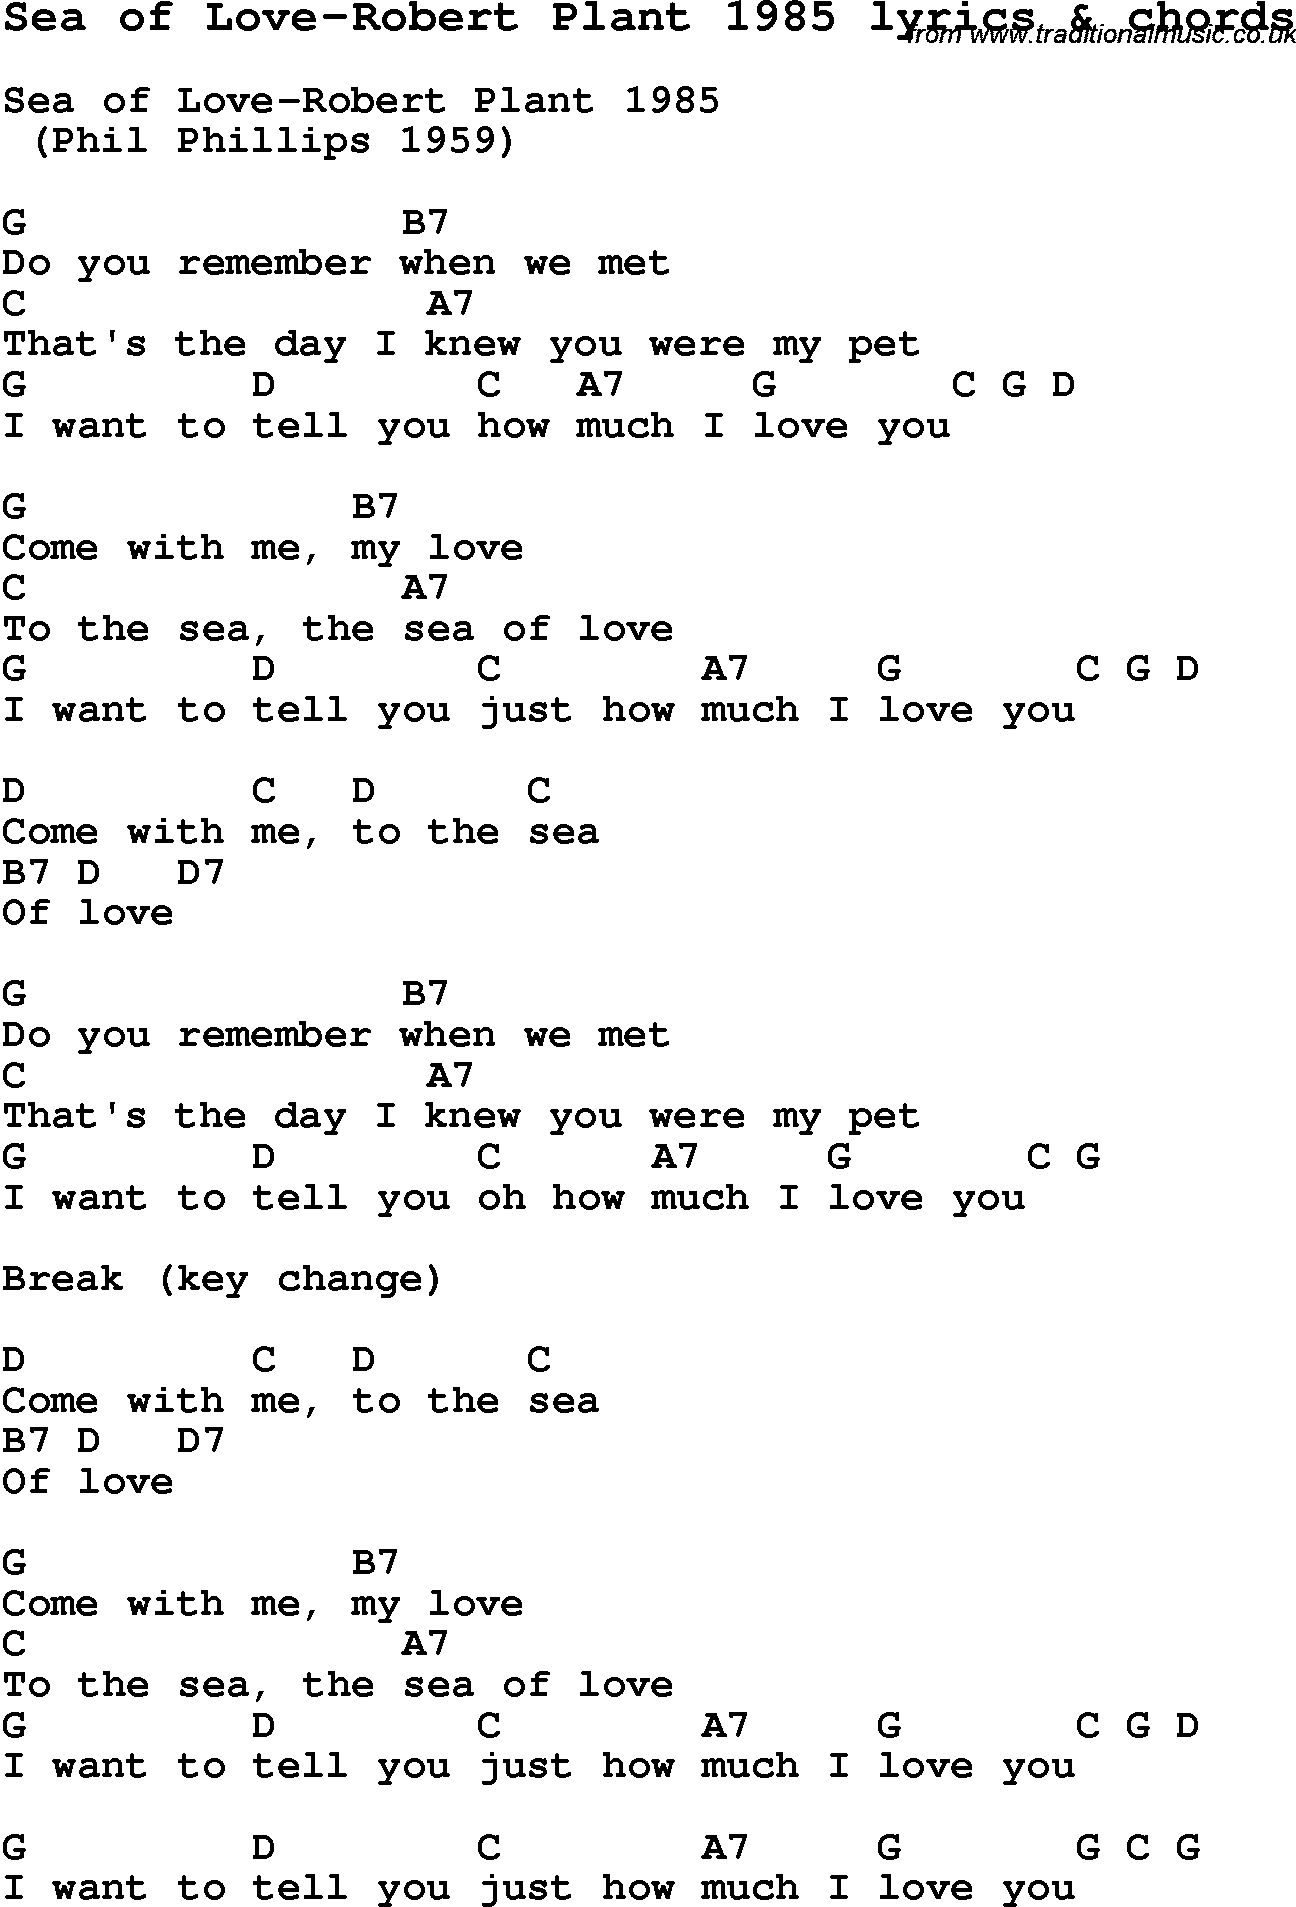 Sea Of Love Chords Love Song Lyrics Forsea Of Love Robert Plant 1985 With Chords